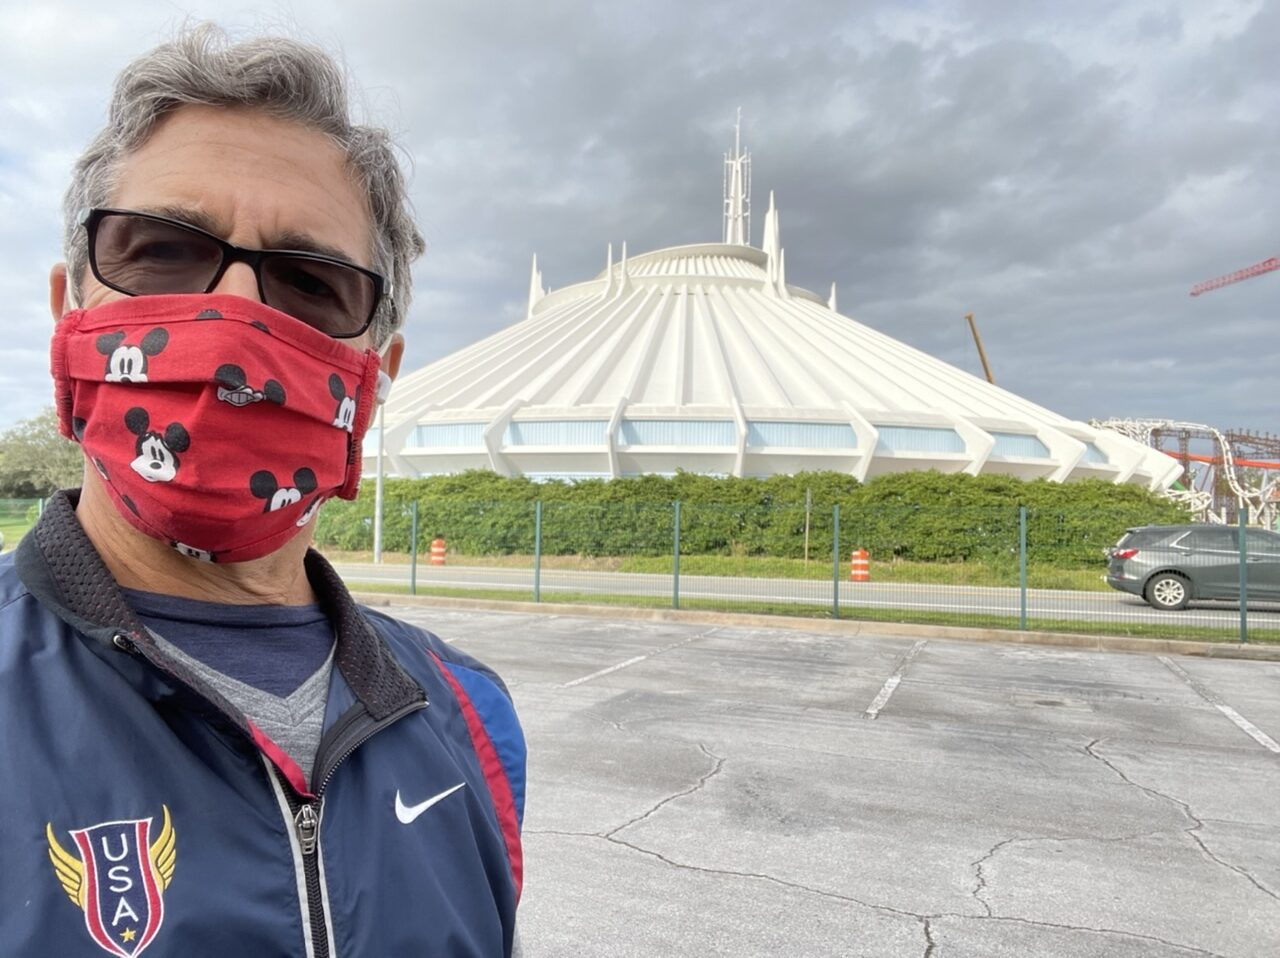 Jeff noel in front of Space Mountain